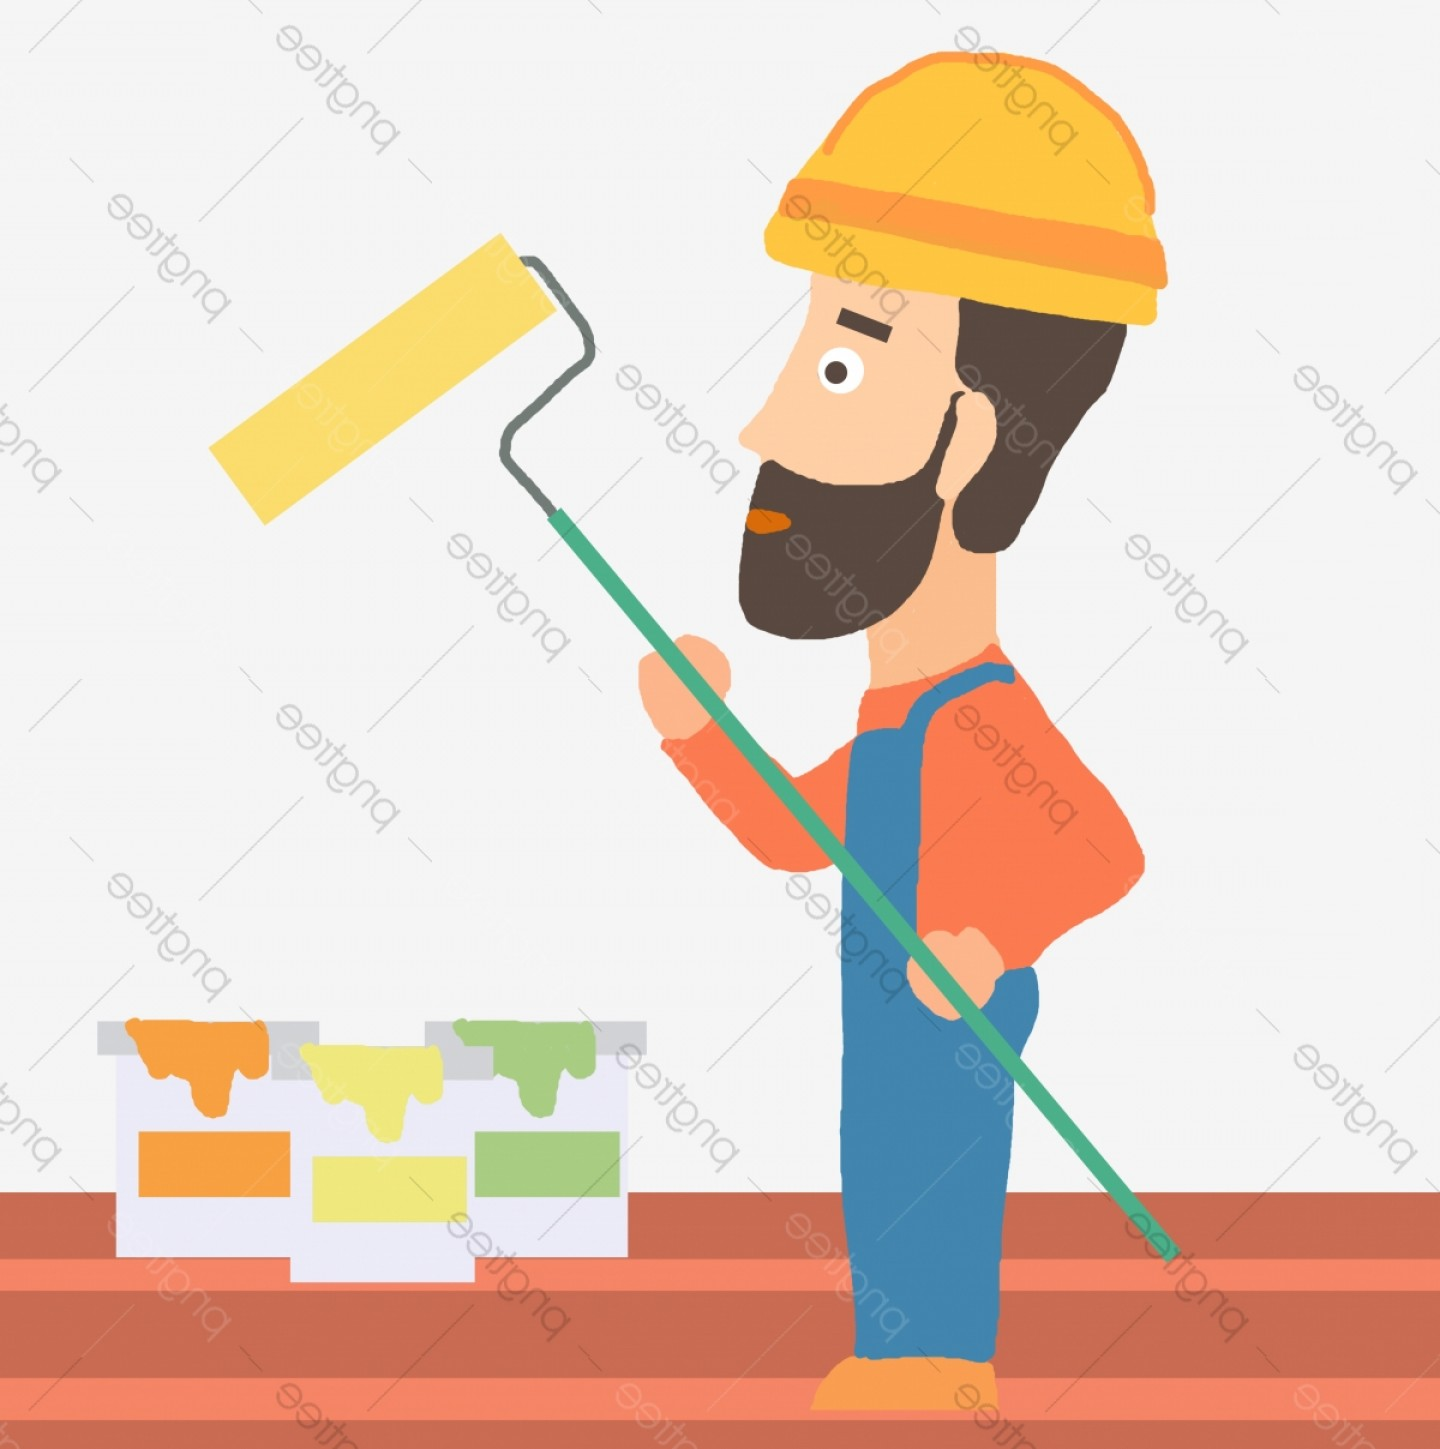 Worker Vector: Hand Drawn Cartoon Paint Worker Vector